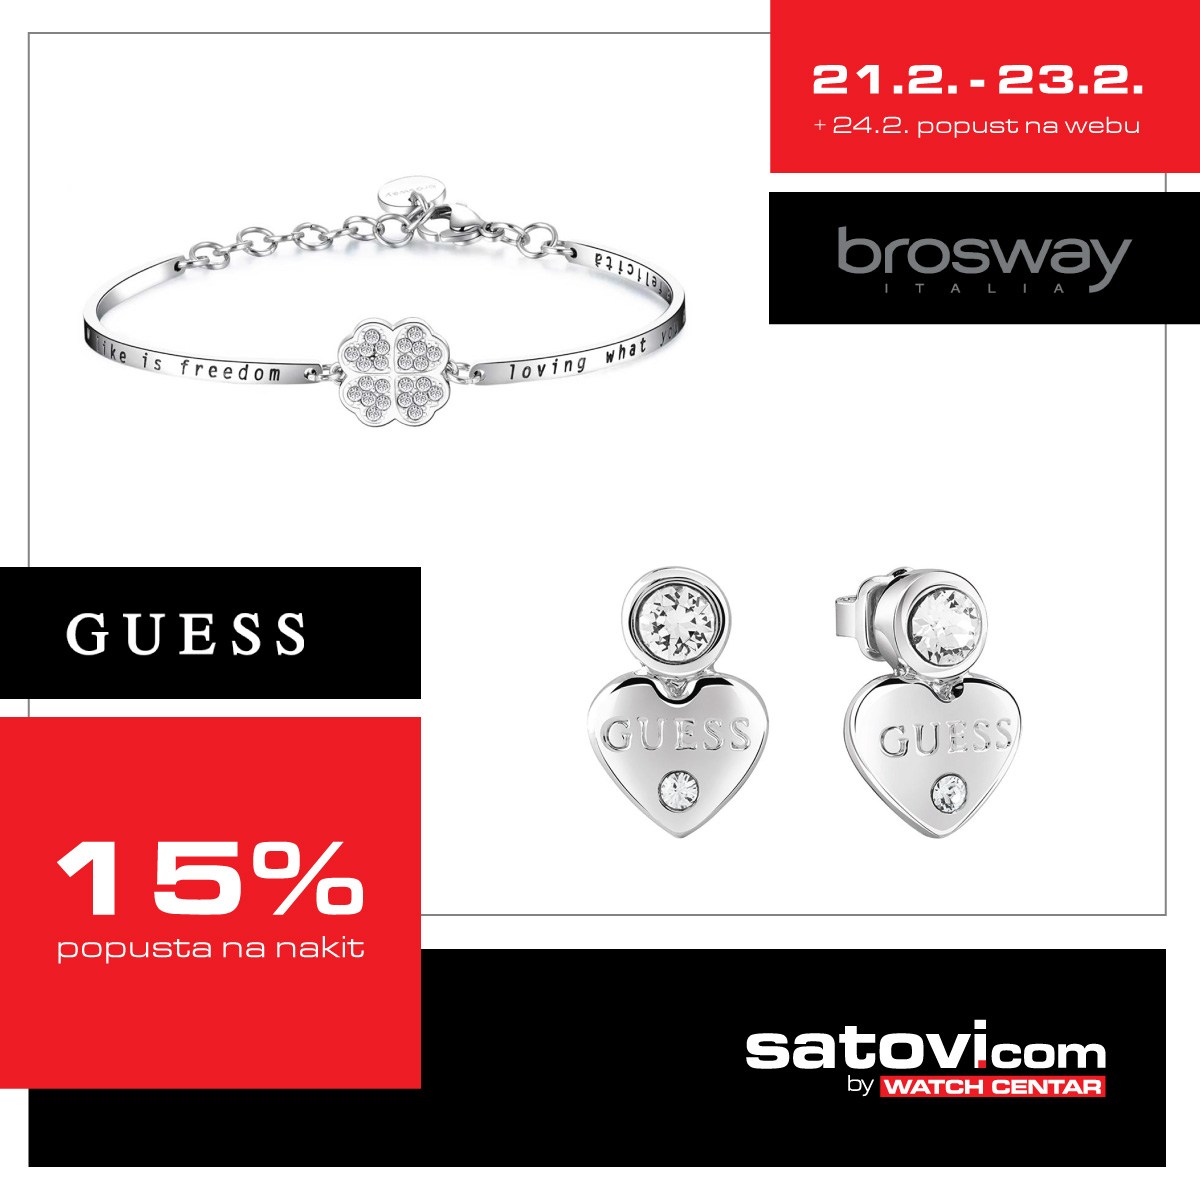 1200x1200_guess_brossway